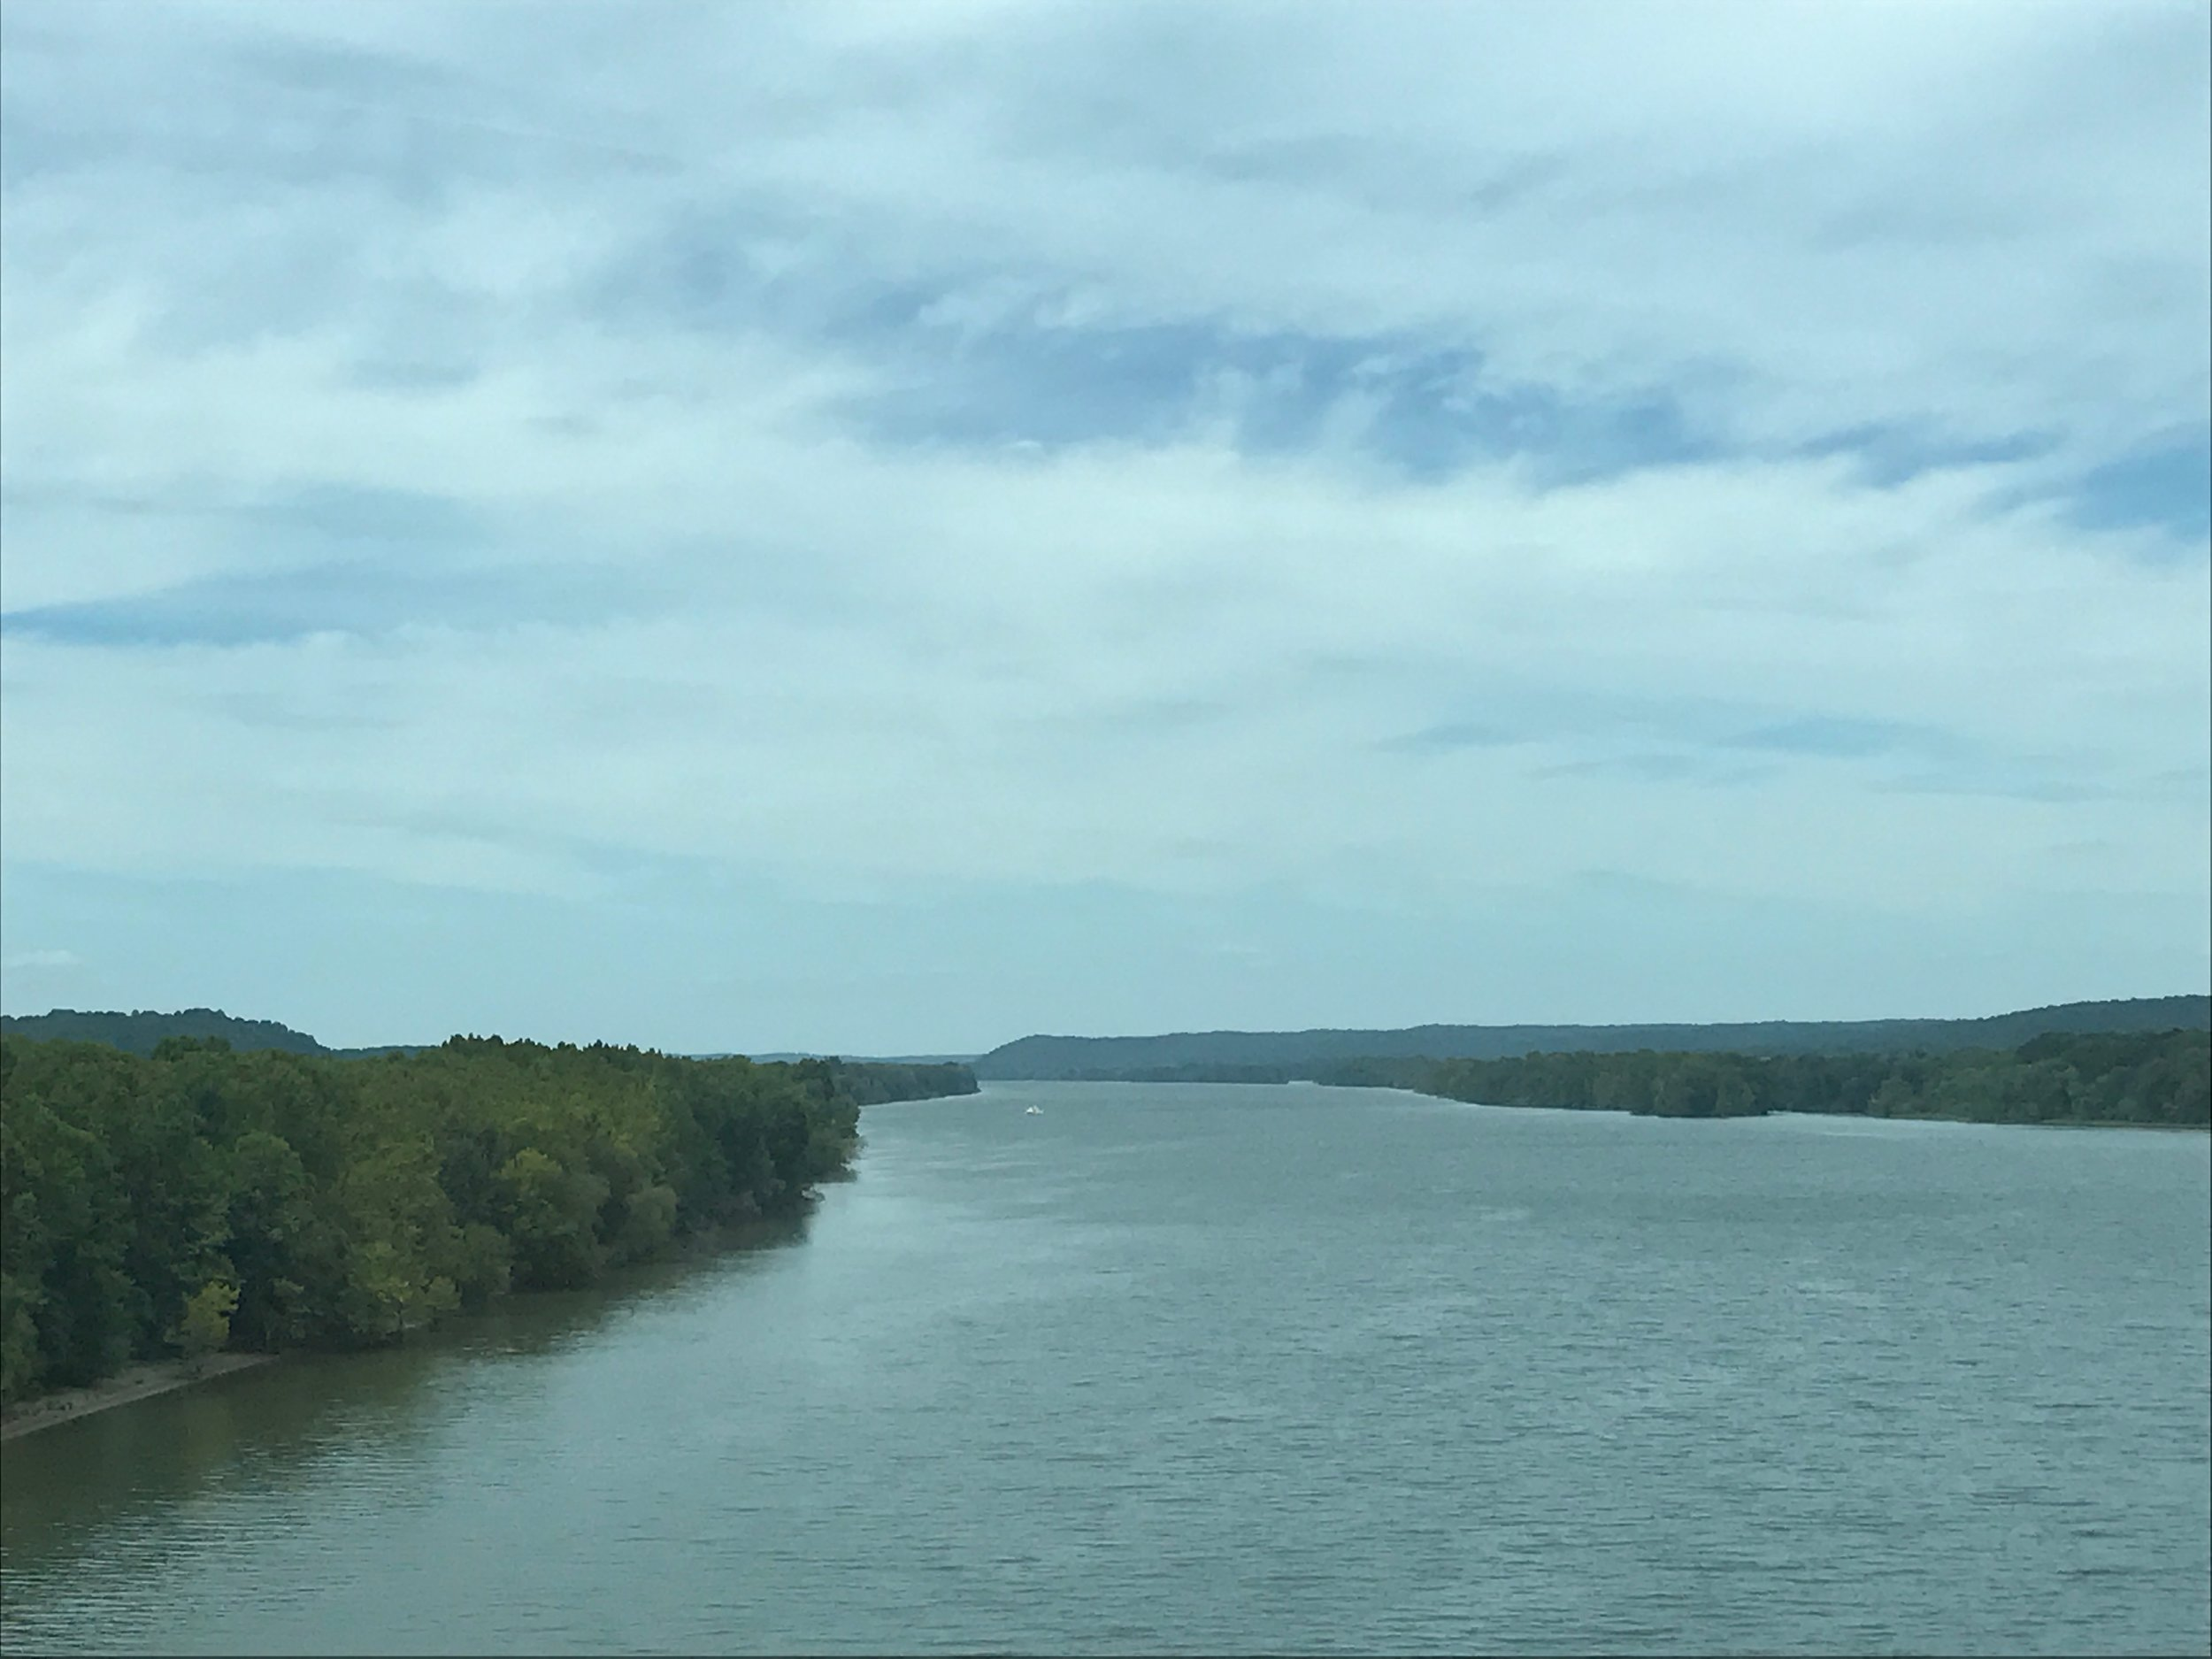 Mississippi River from a bridge